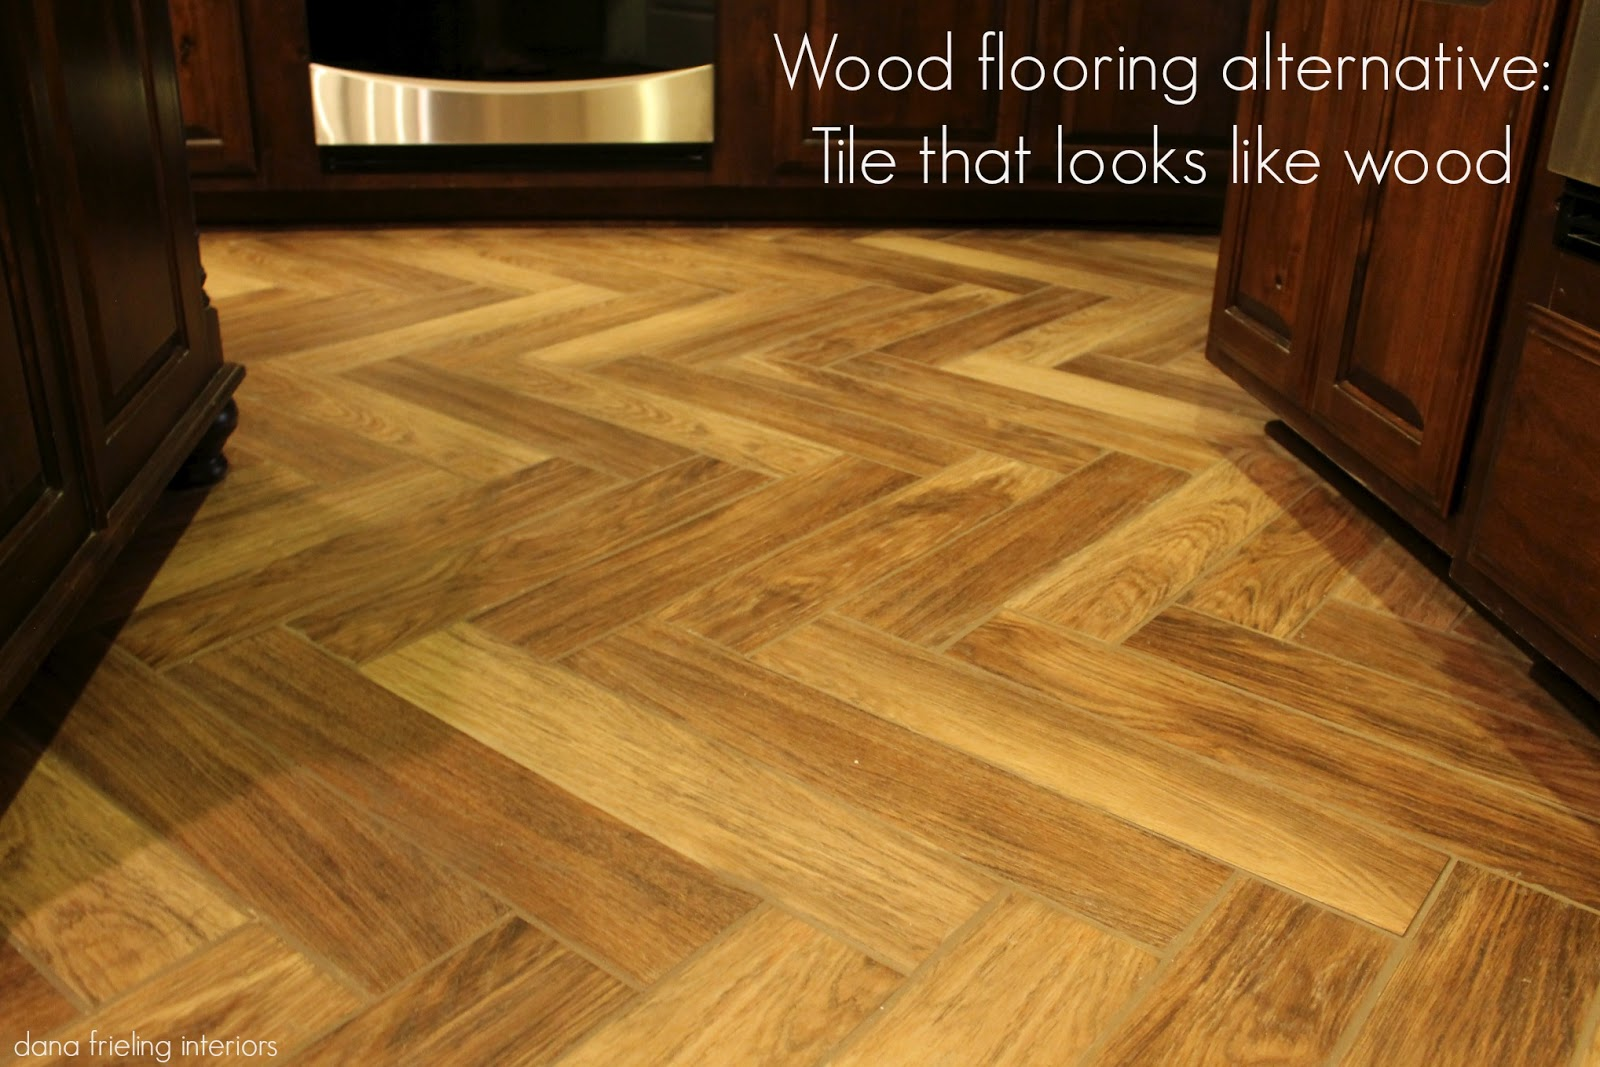 Make them wonder another wood floor alternative Tile looks like wood floor